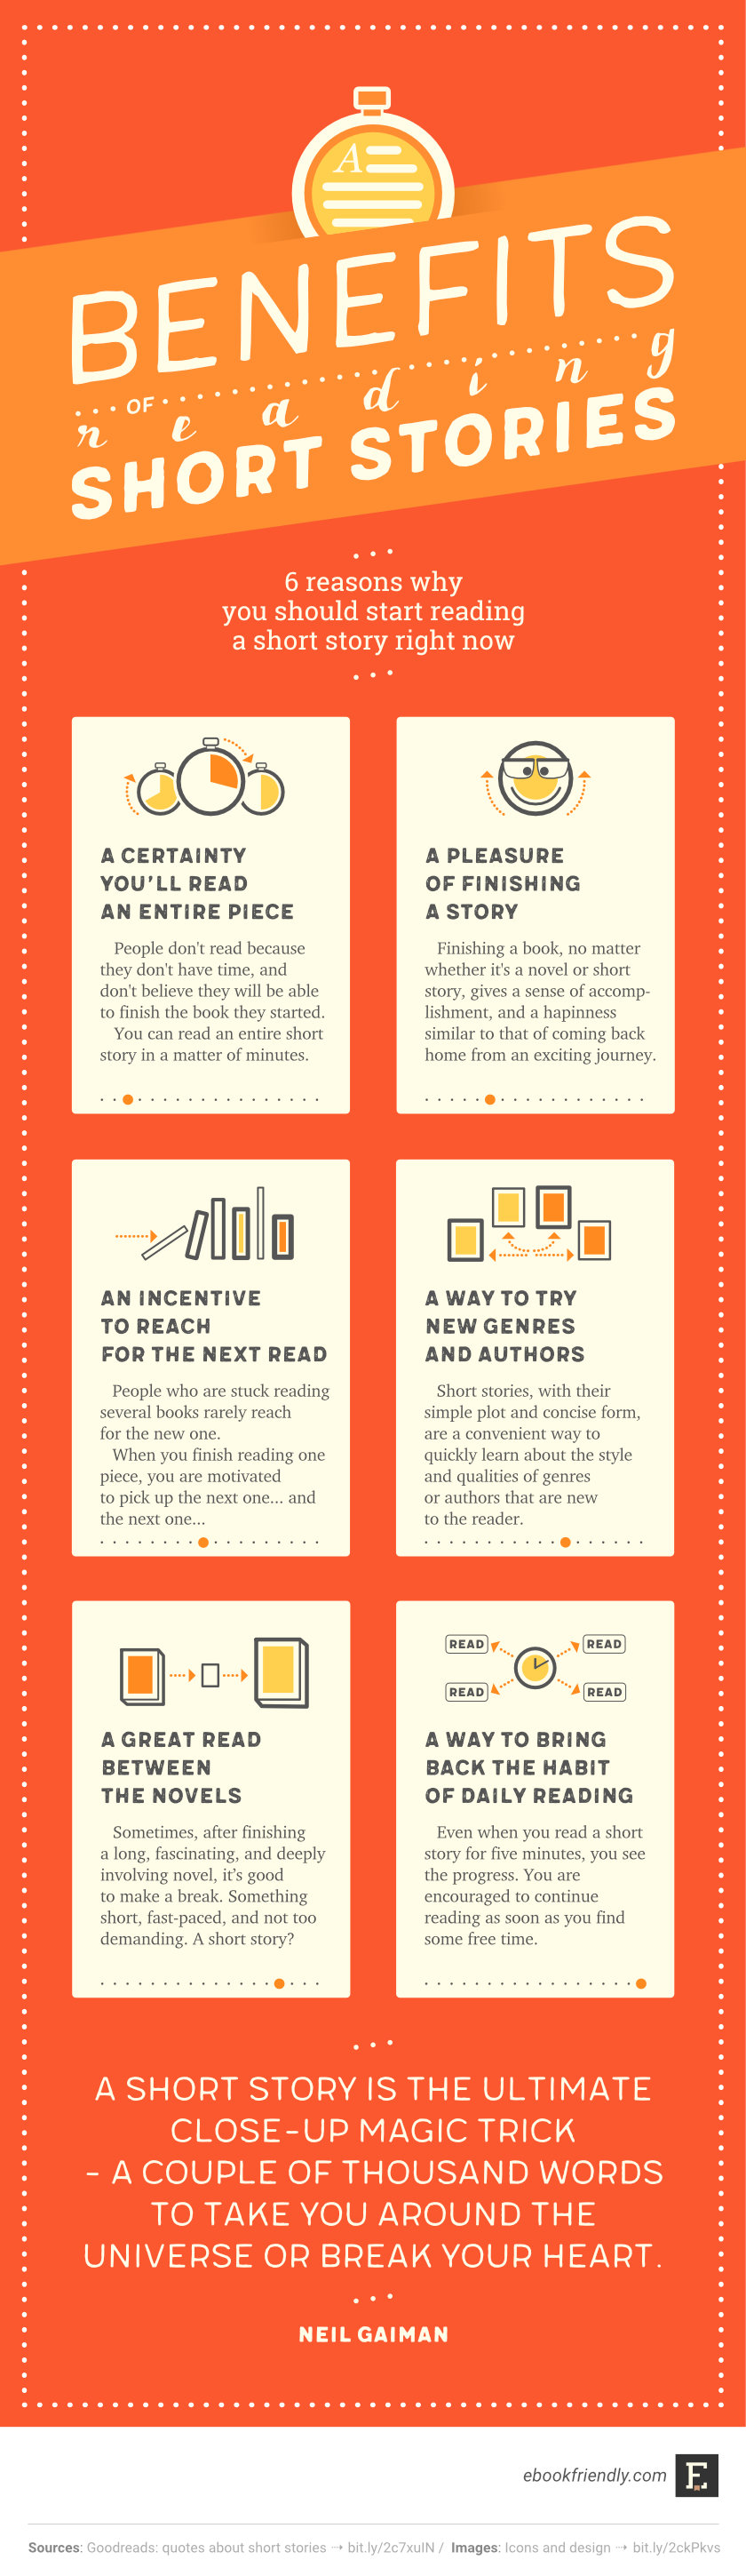 Benefits of reading short stories (infographic) | Ebook Friendly